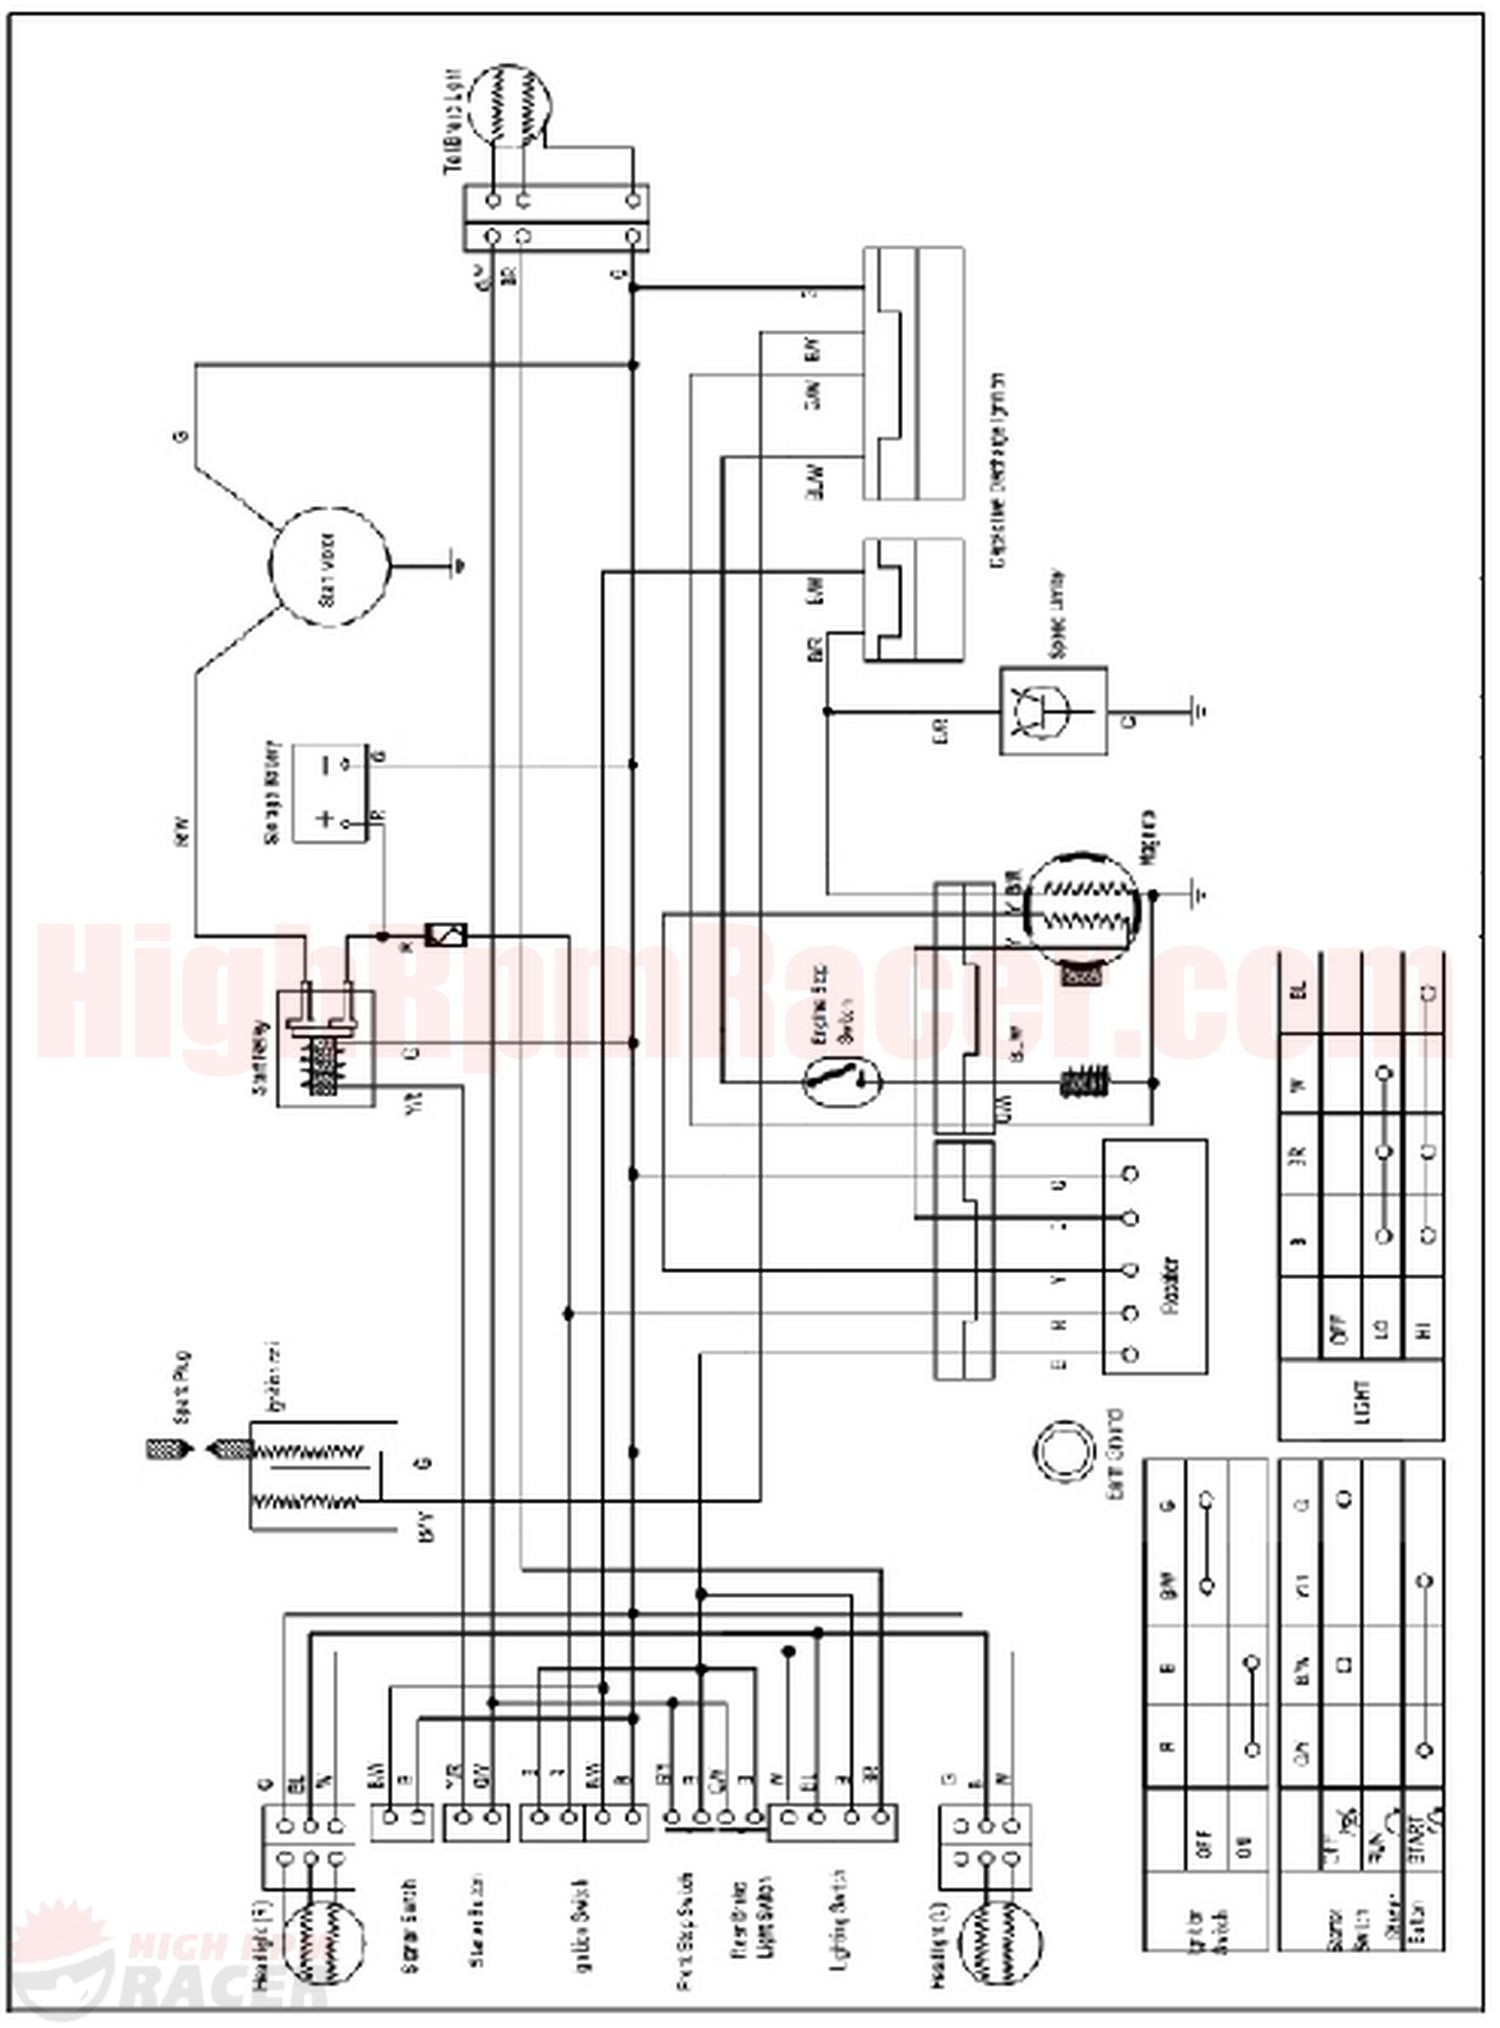 Chinese Atv Wiring Diagram 50cc Image Viper 4105v 2004 Gmc Yukon Additionally For Baja 250cc Atvs From Sourcebeincloverco